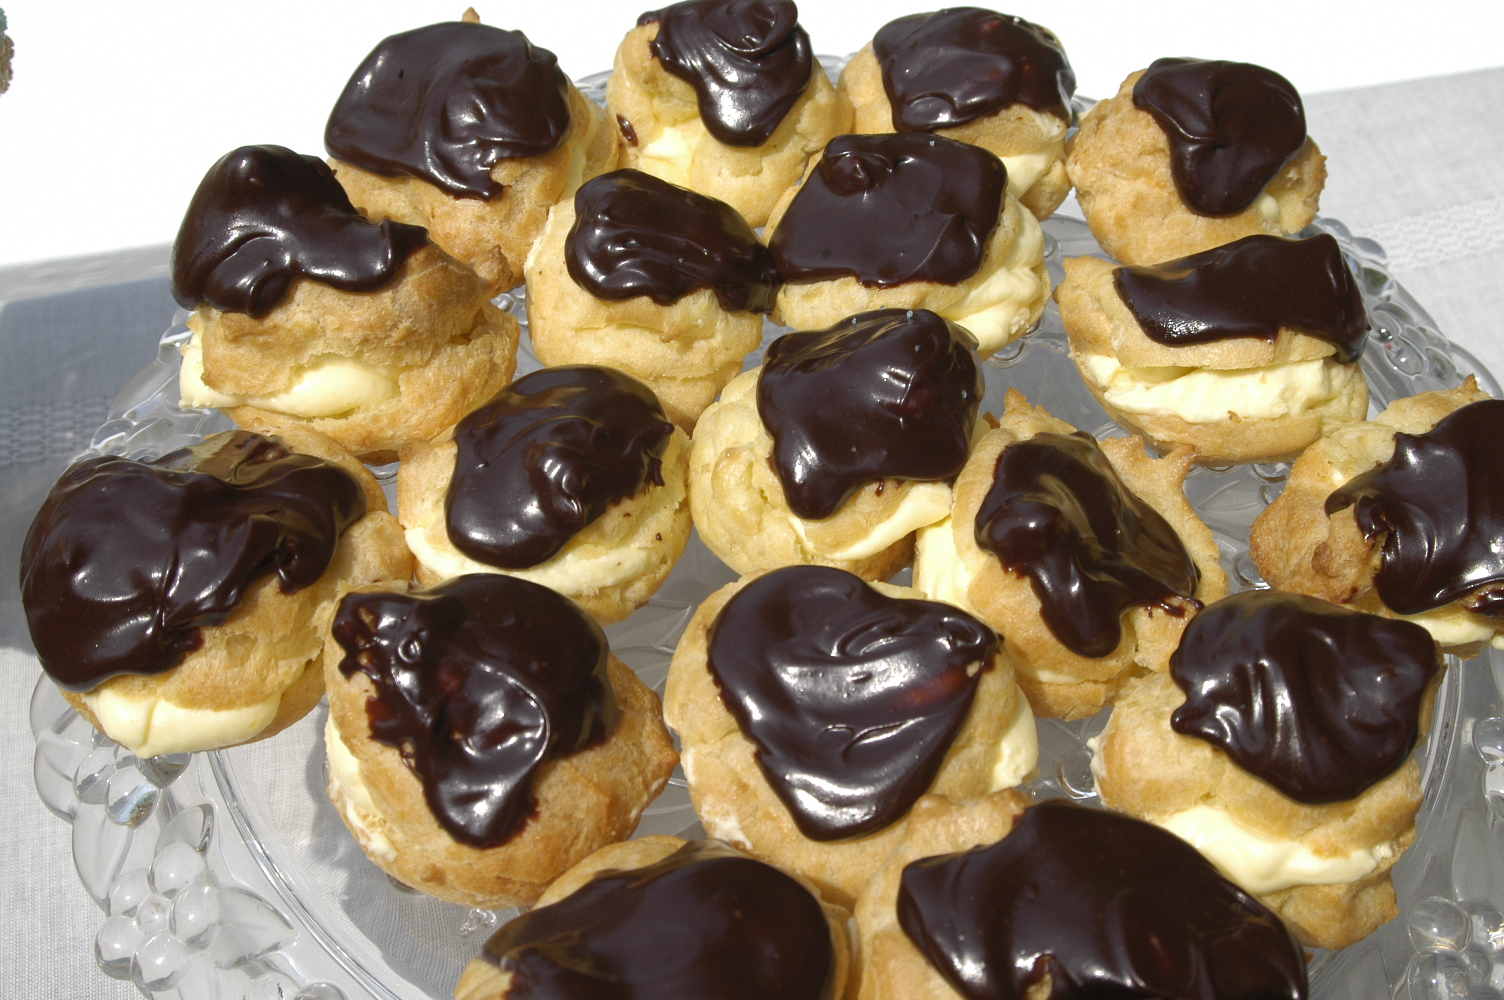 Chocolate Cream Puff chocolate cream puffs hickory creek lane